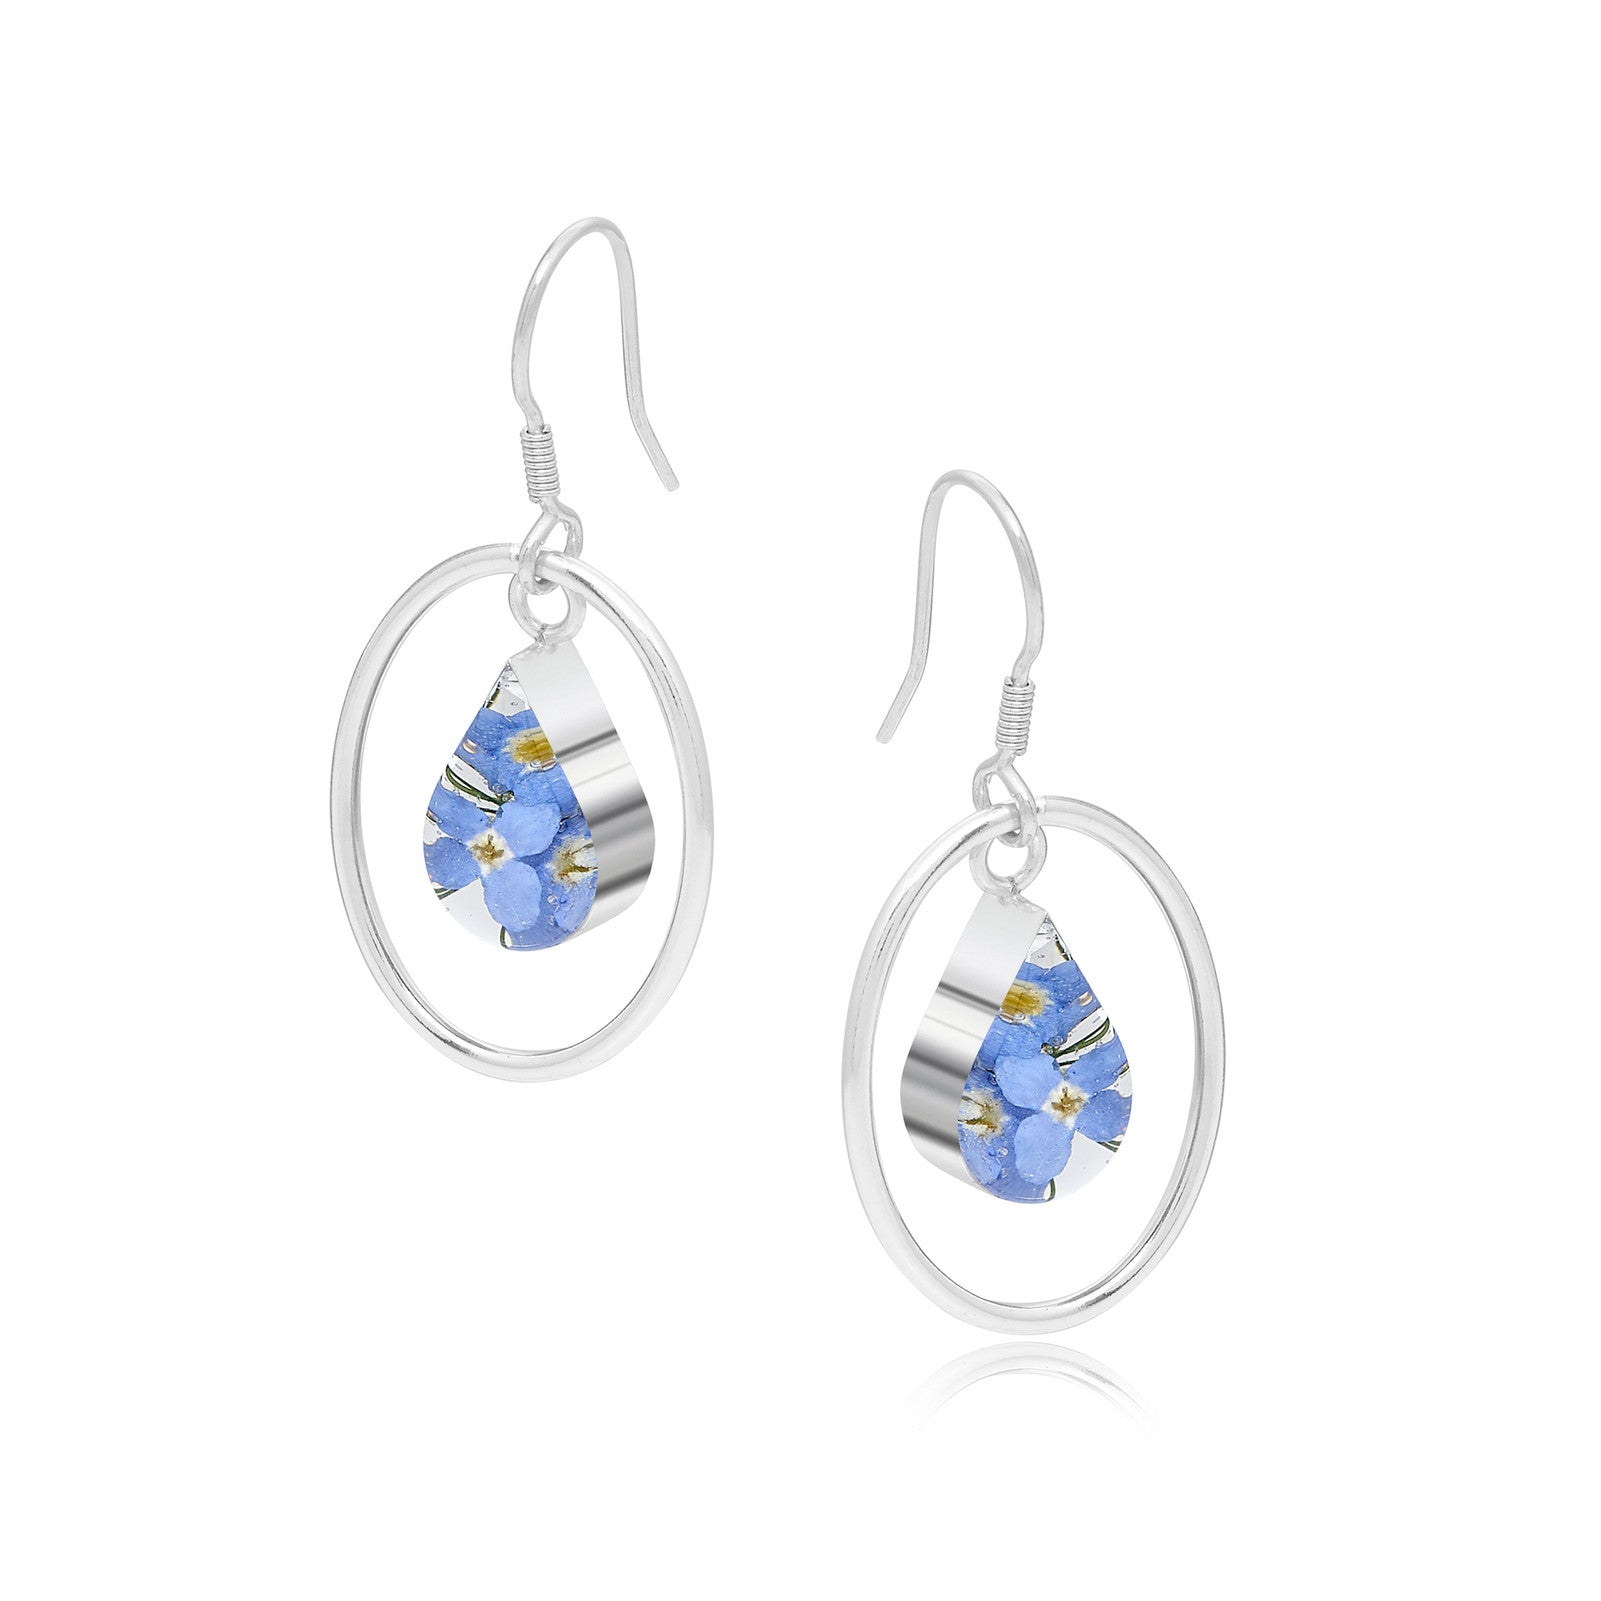 Silver Earrings - Forget-Me-Not -with Silver Oval Surround